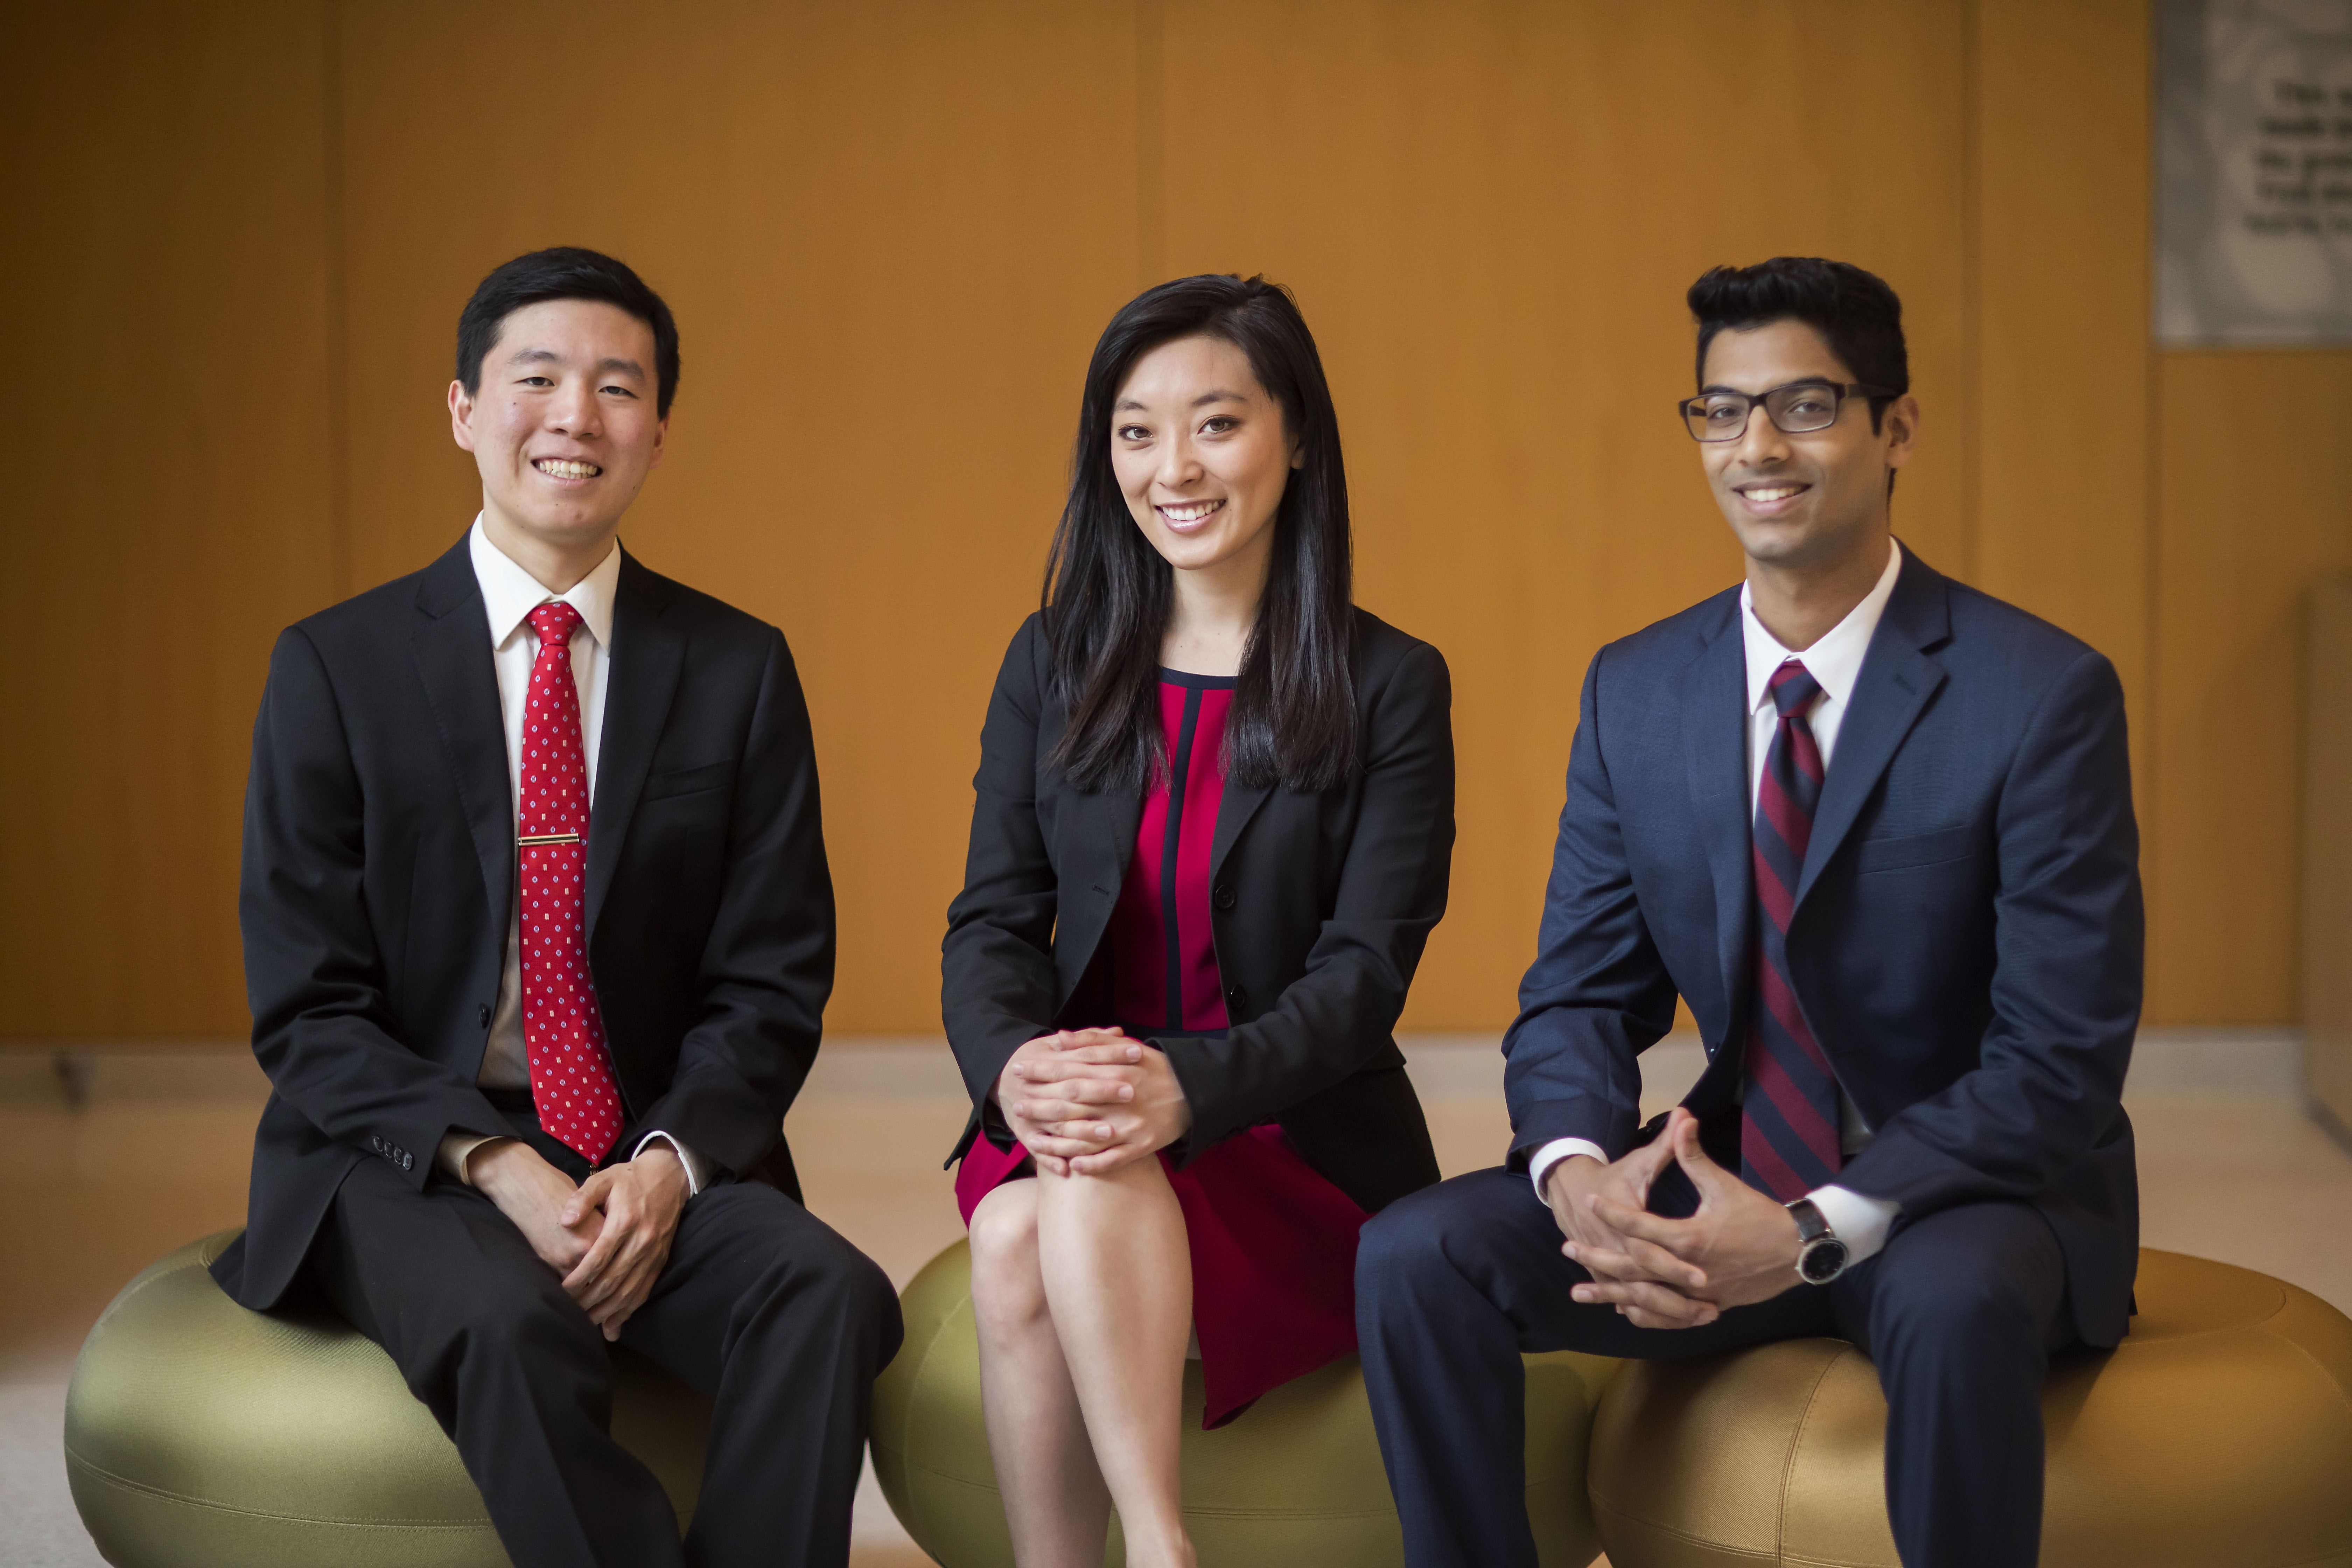 caption: Brandon Kao, Rui Jing Jiang and Adarsh Battu. Photo courtesy of the Office of the President.